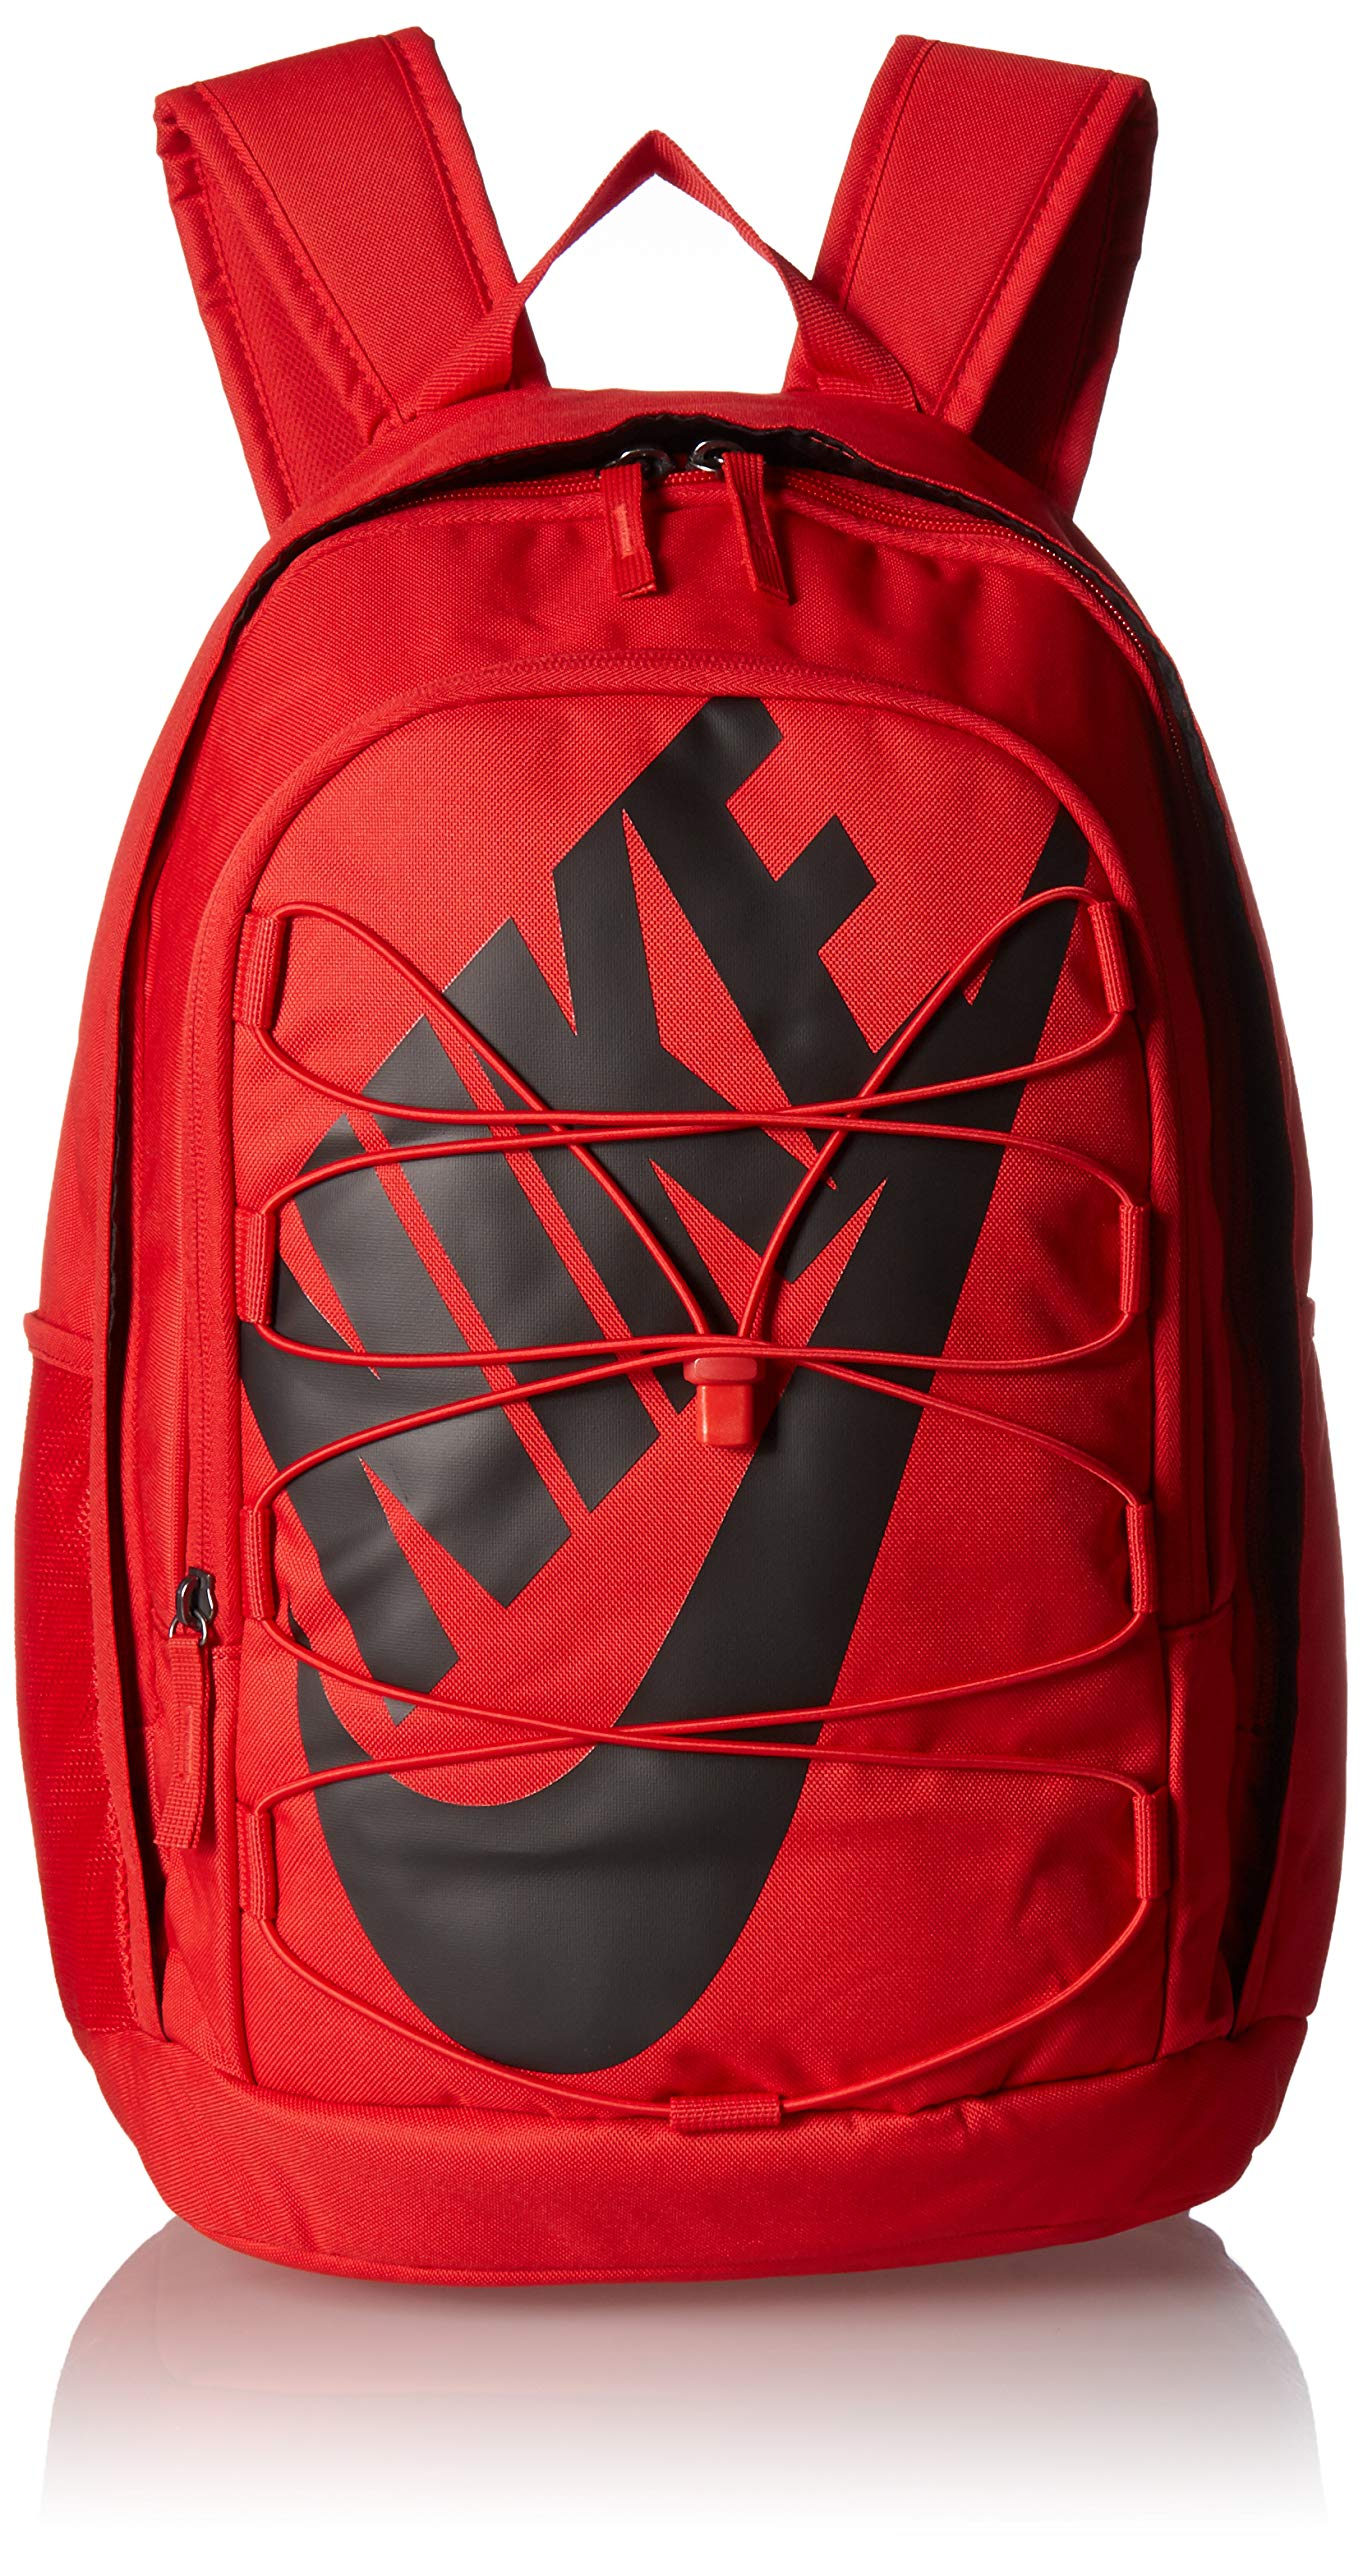 Nike Hayward 2.0 Backpack, Backpack for Women and Men with Polyester Shell & Adjustable Straps, University Red/University Red by Nike